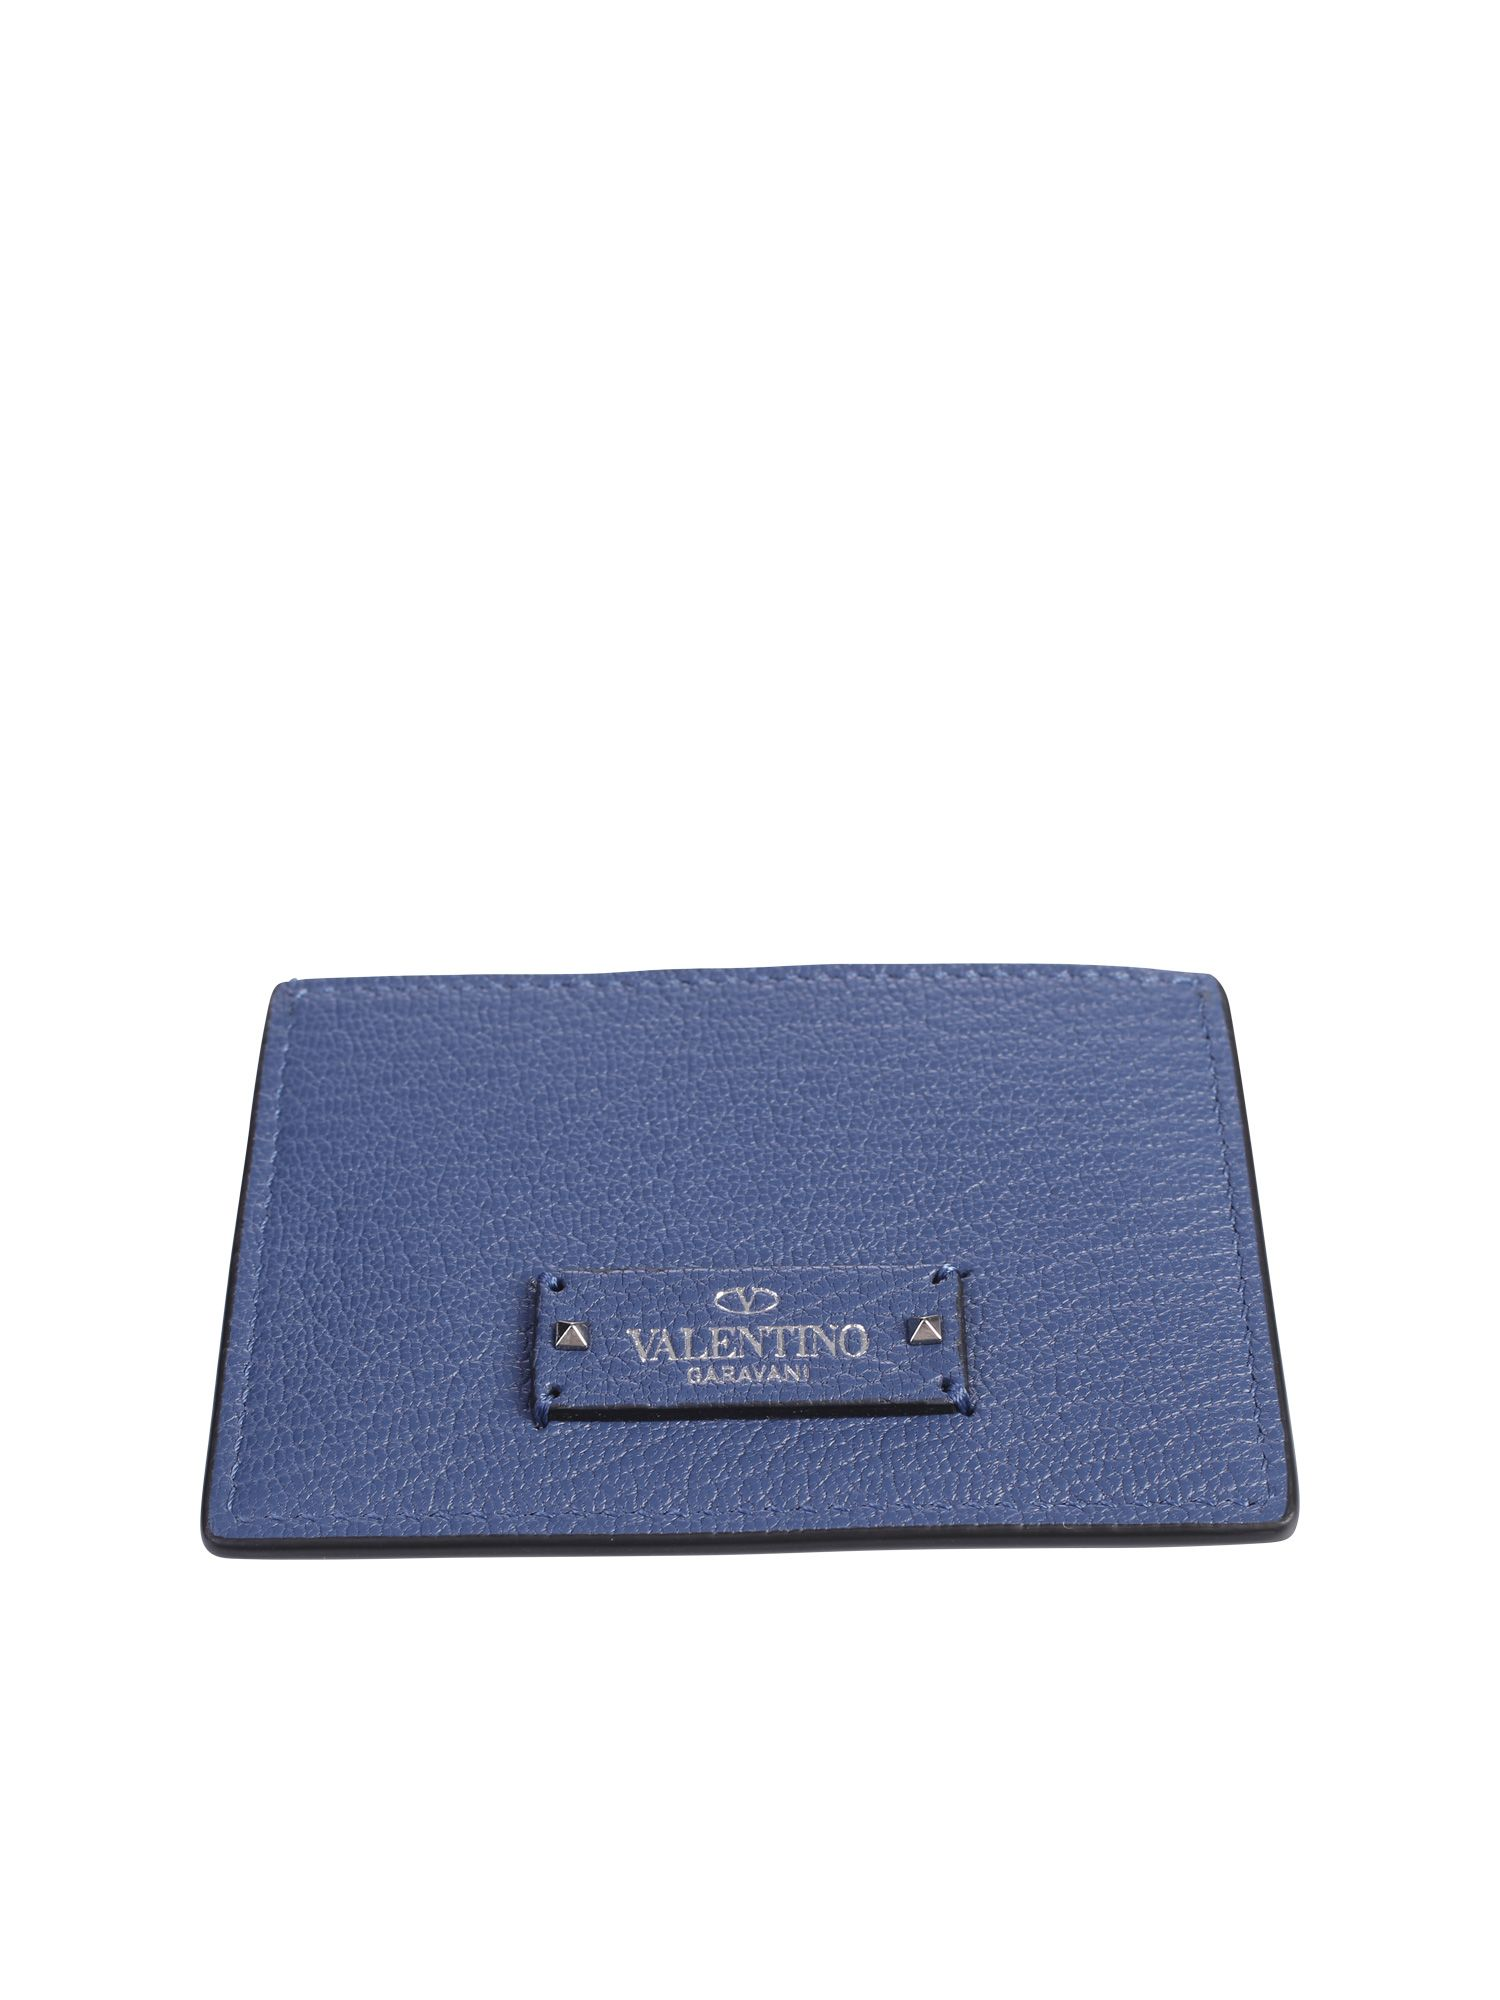 VALENTINO LEATHER CARDS HOLDER